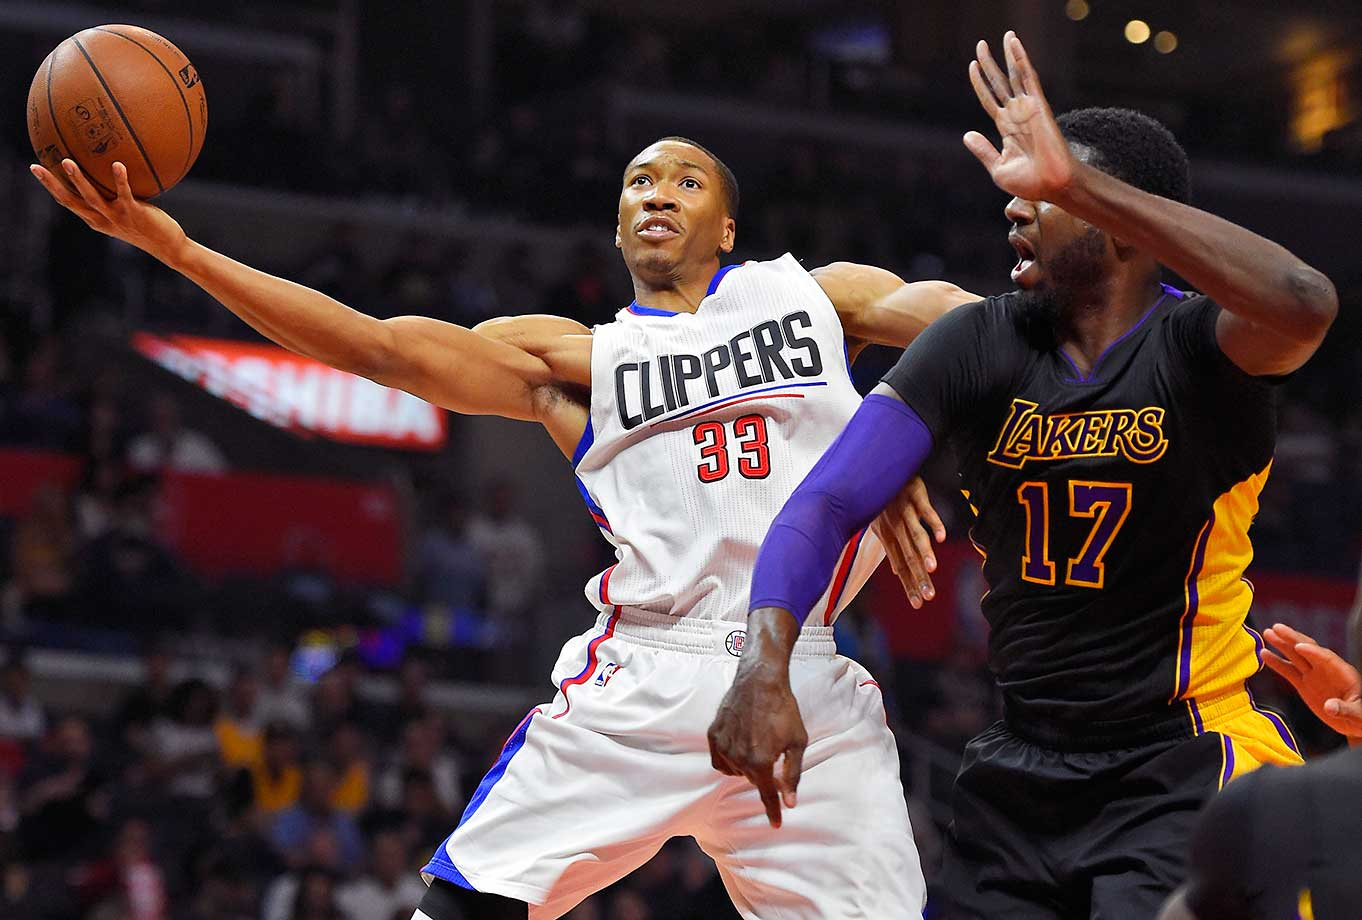 Los Angeles Clippers forward Wesley Johnson shoots as Los Angeles Lakers center Roy Hibbert defends in Los Angeles.